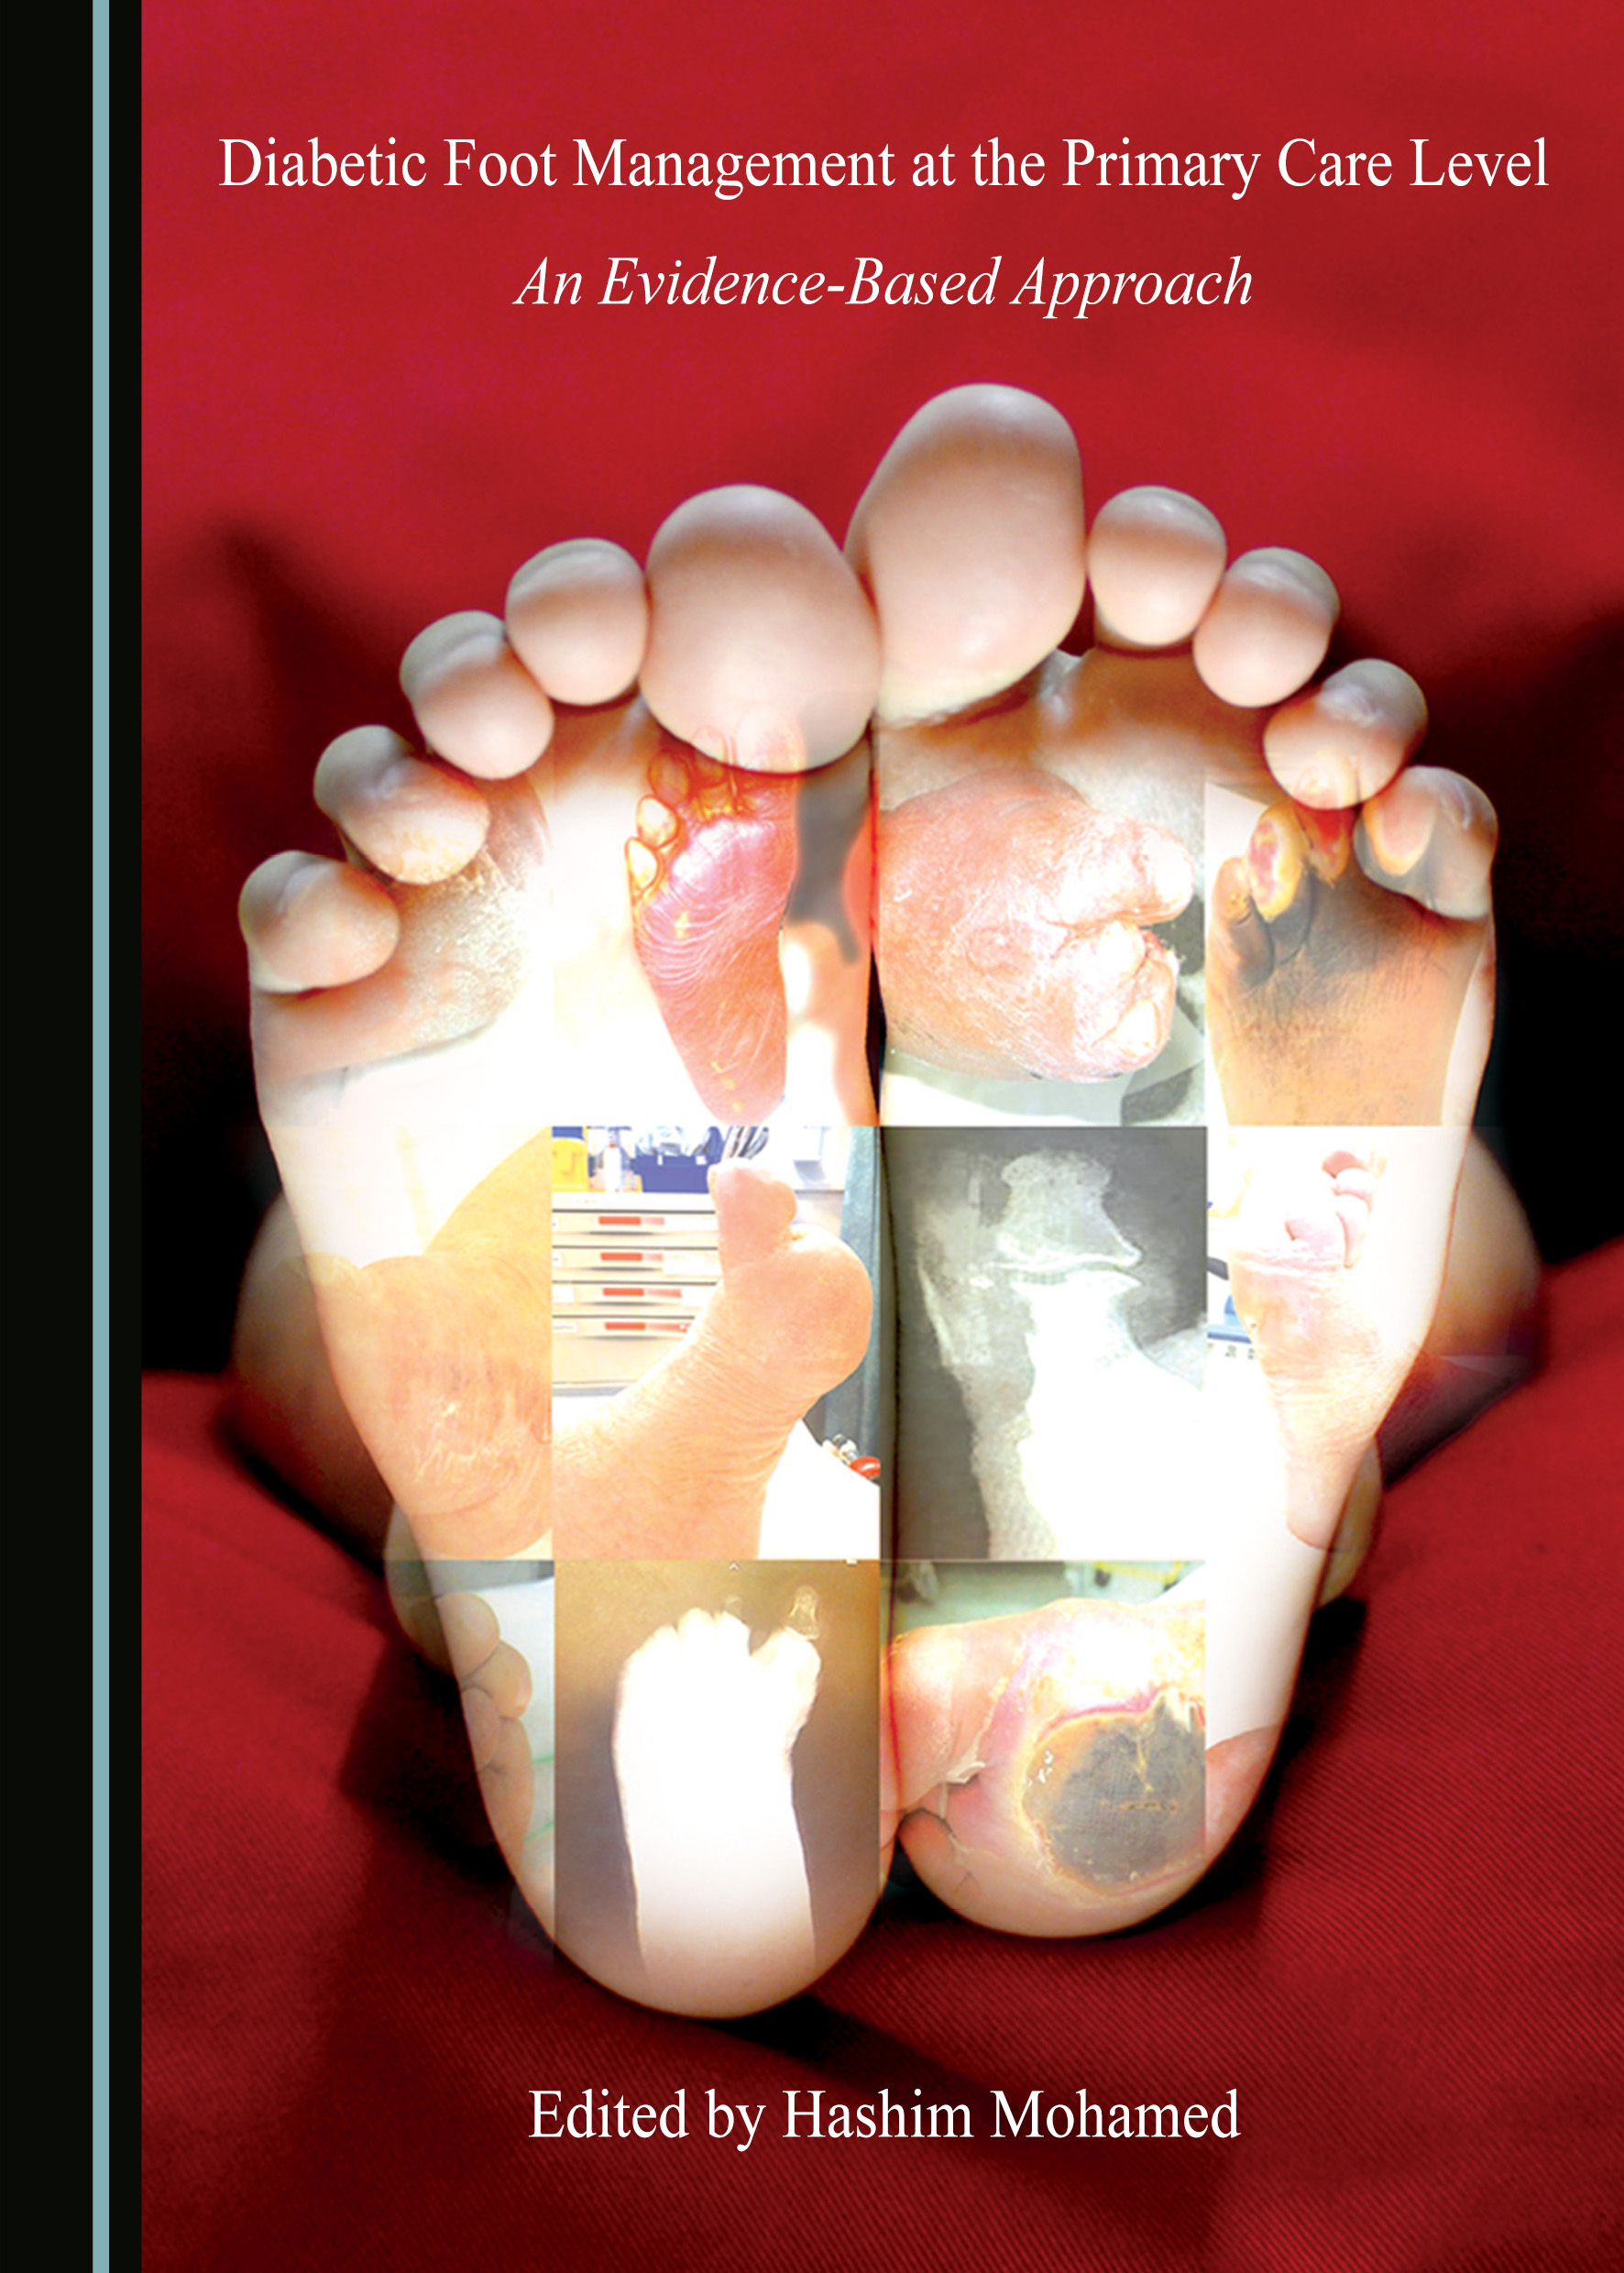 Diabetic Foot Management at the Primary Care Level: An Evidence-Based Approach